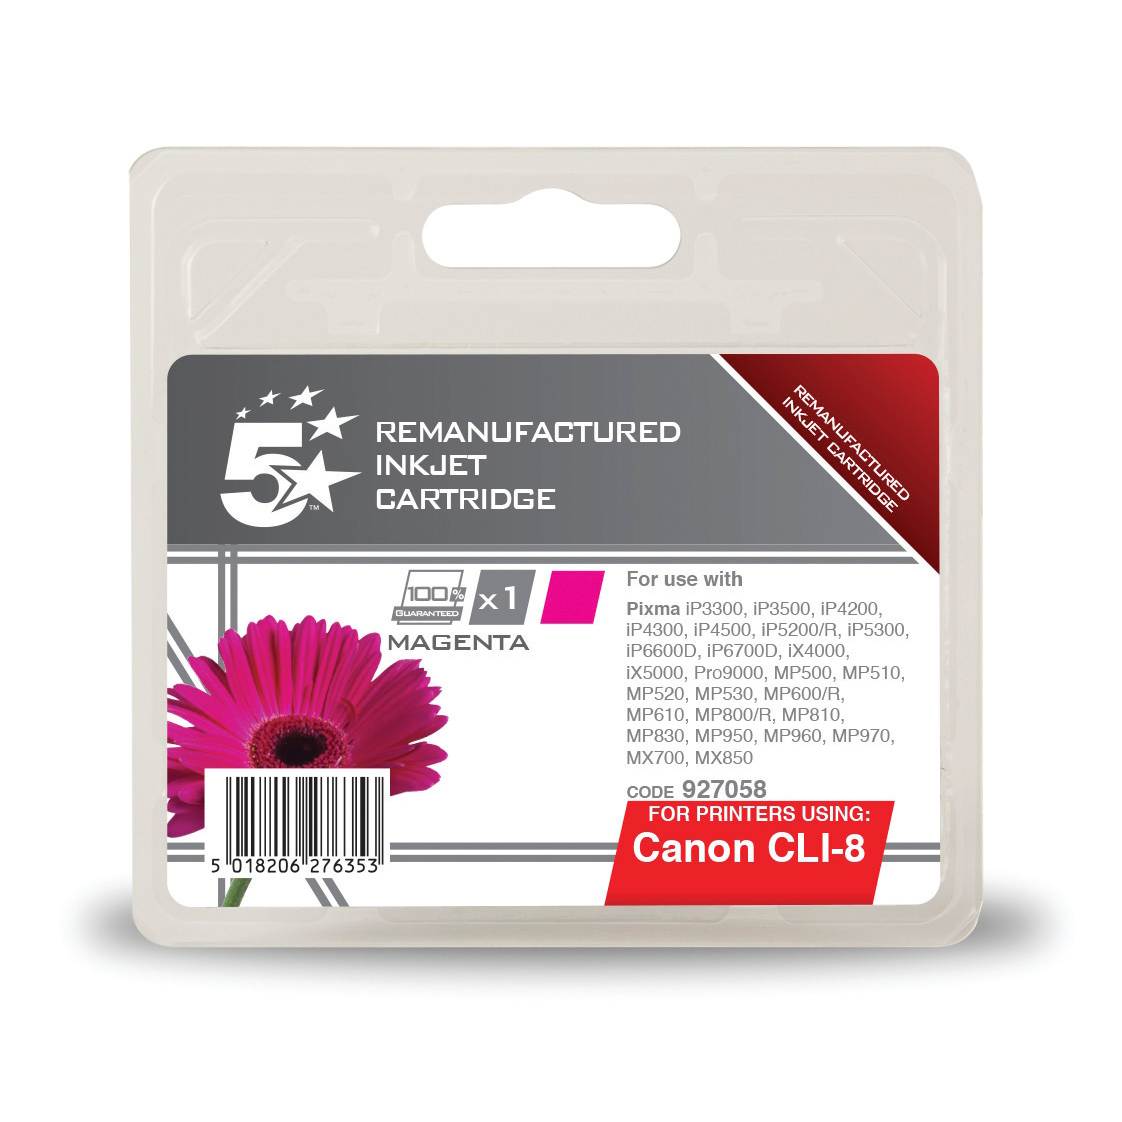 5 Star Office Remanufactured Inkjet Cartridge Page Life 565pp 13ml Magenta [Canon CLI-8M Alternative]